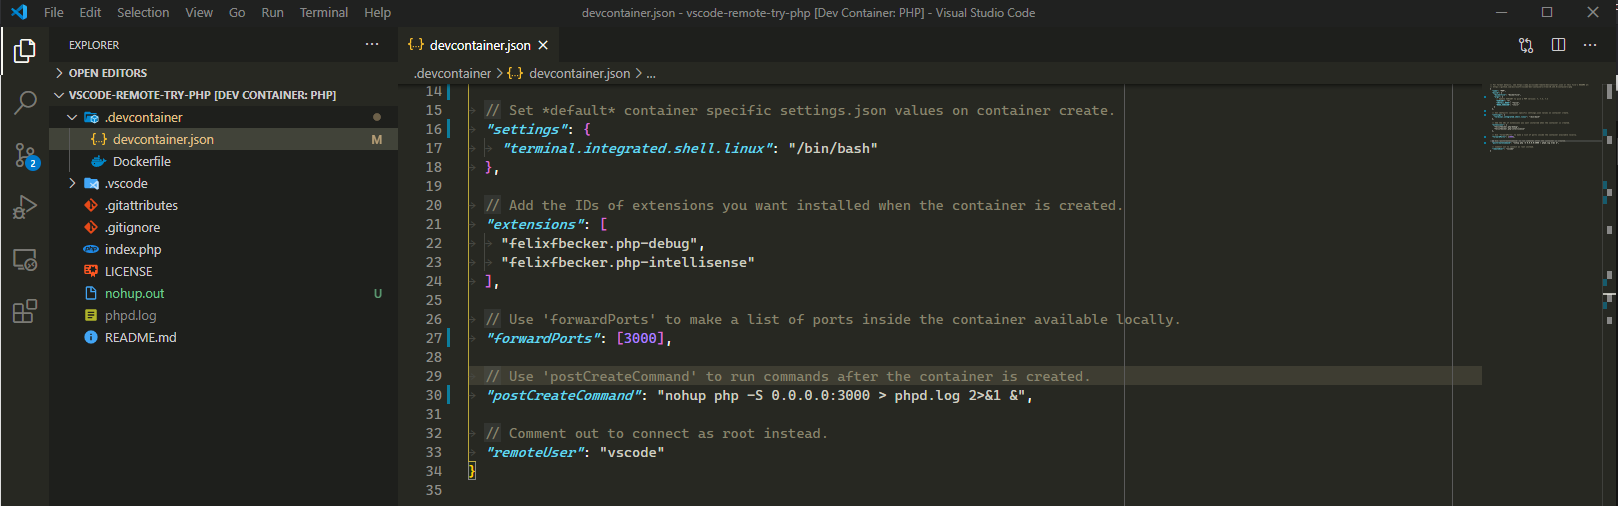 Modifying the devcontainer.json file to expose a port and start a PHP server.